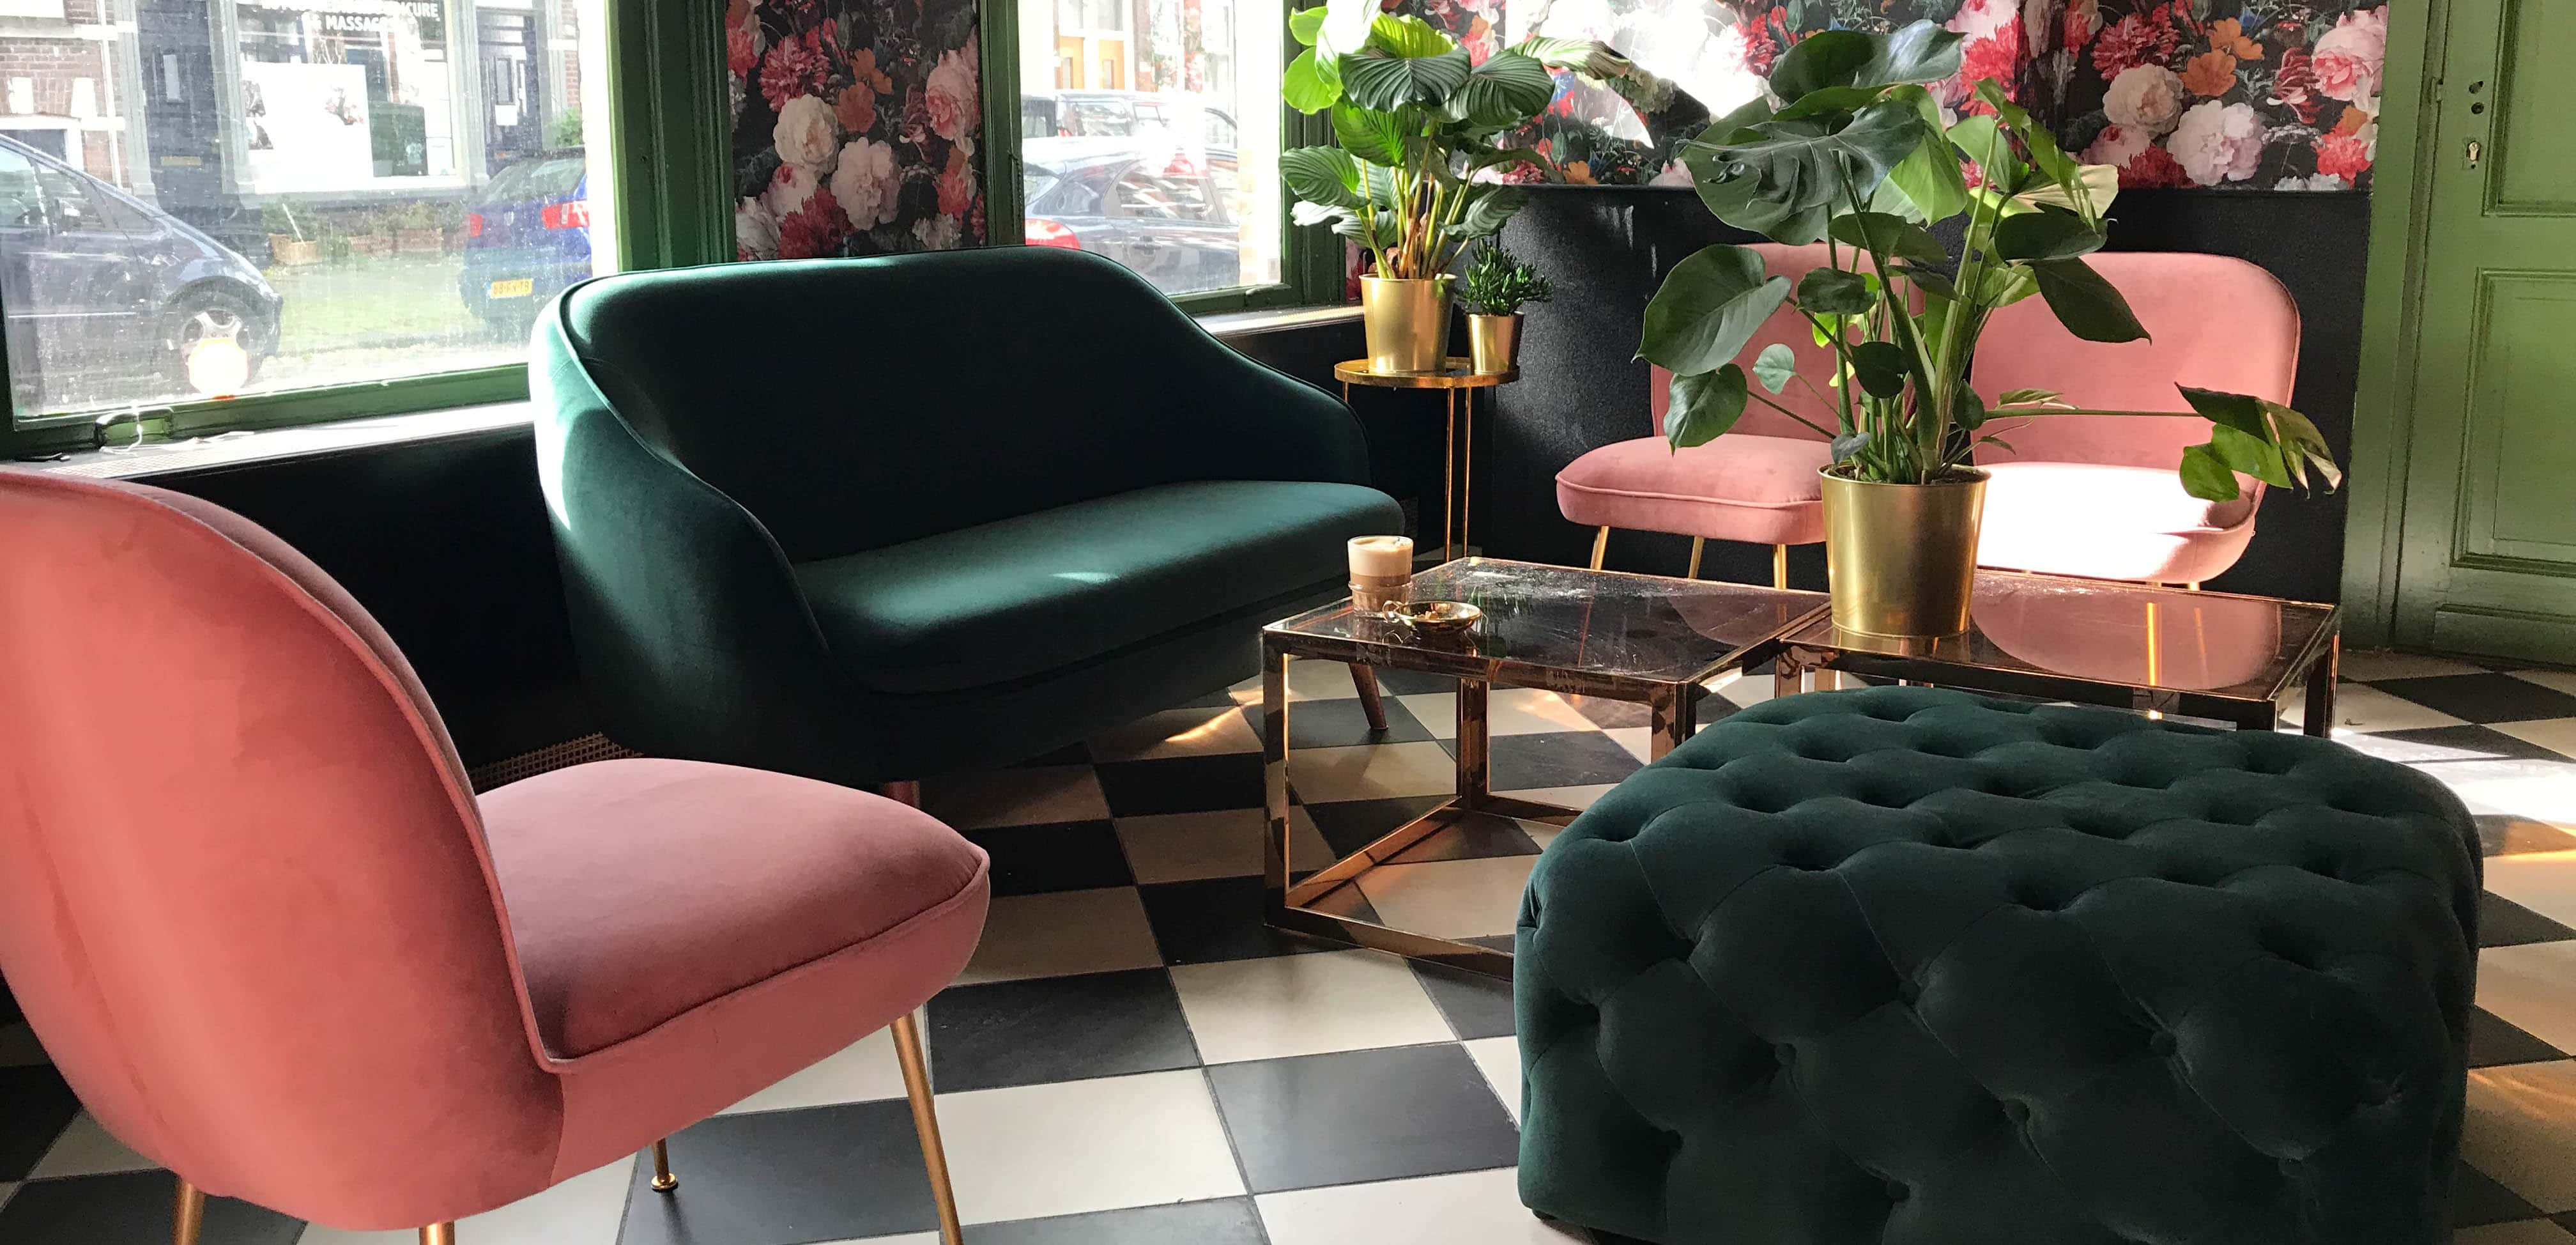 9 instagrammable spots in Rotterdam Rose Rouge, 9 instagrammable plekken in Rotterdam, RoseRouge, Kubuswoningen, Lilith, Foo Concepts, Mono, Gracy's, Luchtsingel, Boijmans, street art Rotterdam, Rotterdam, Instagram spots in Rotterdam, things to do in Rotterdam, leuke plekken in Rotterdam, instagram plekken in Rotterdam, mooiste eettentjes van Rotterdam